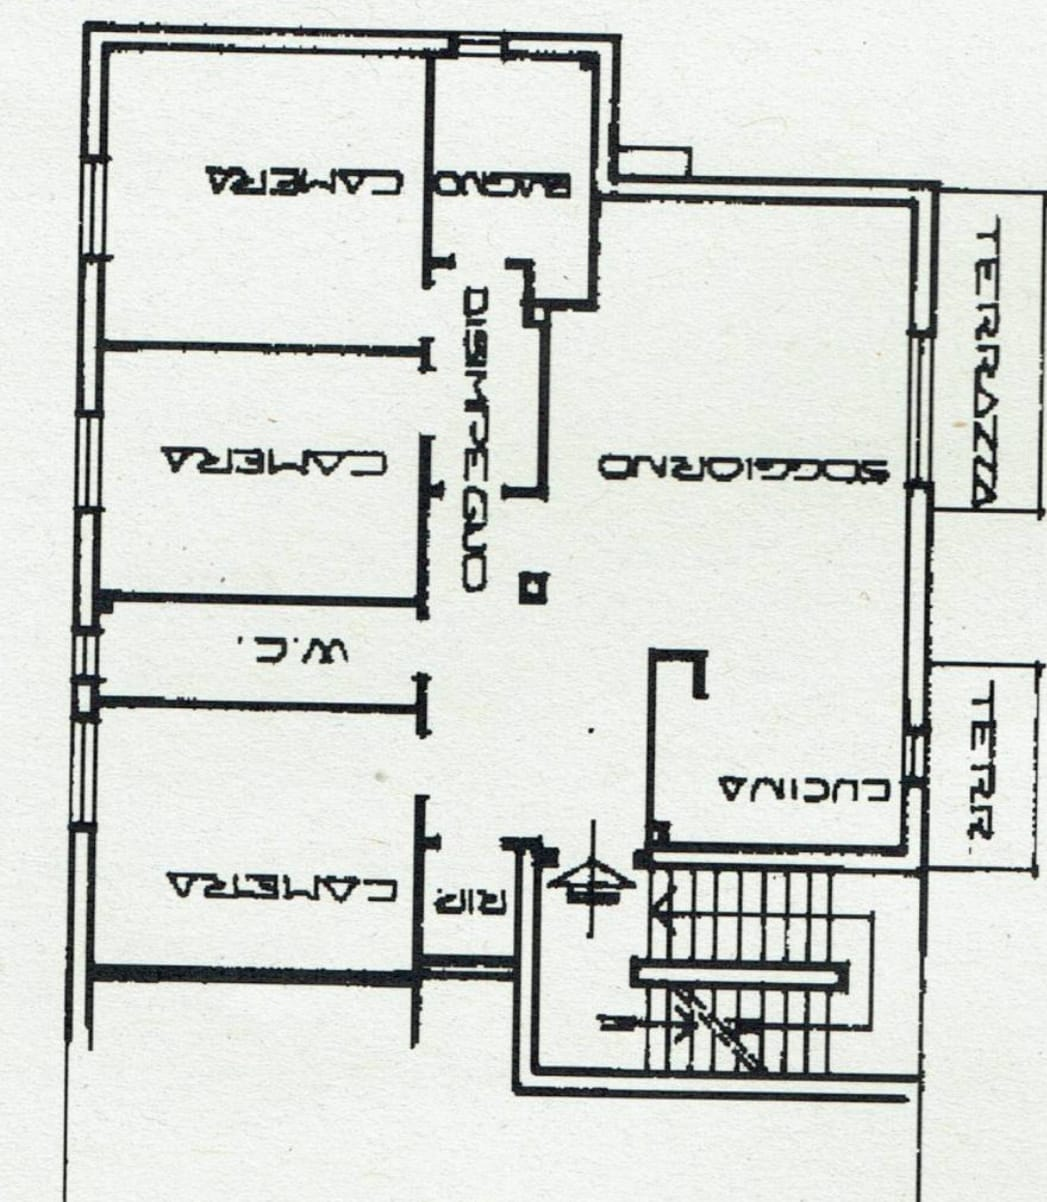 Plan 1/1 for ref. 111